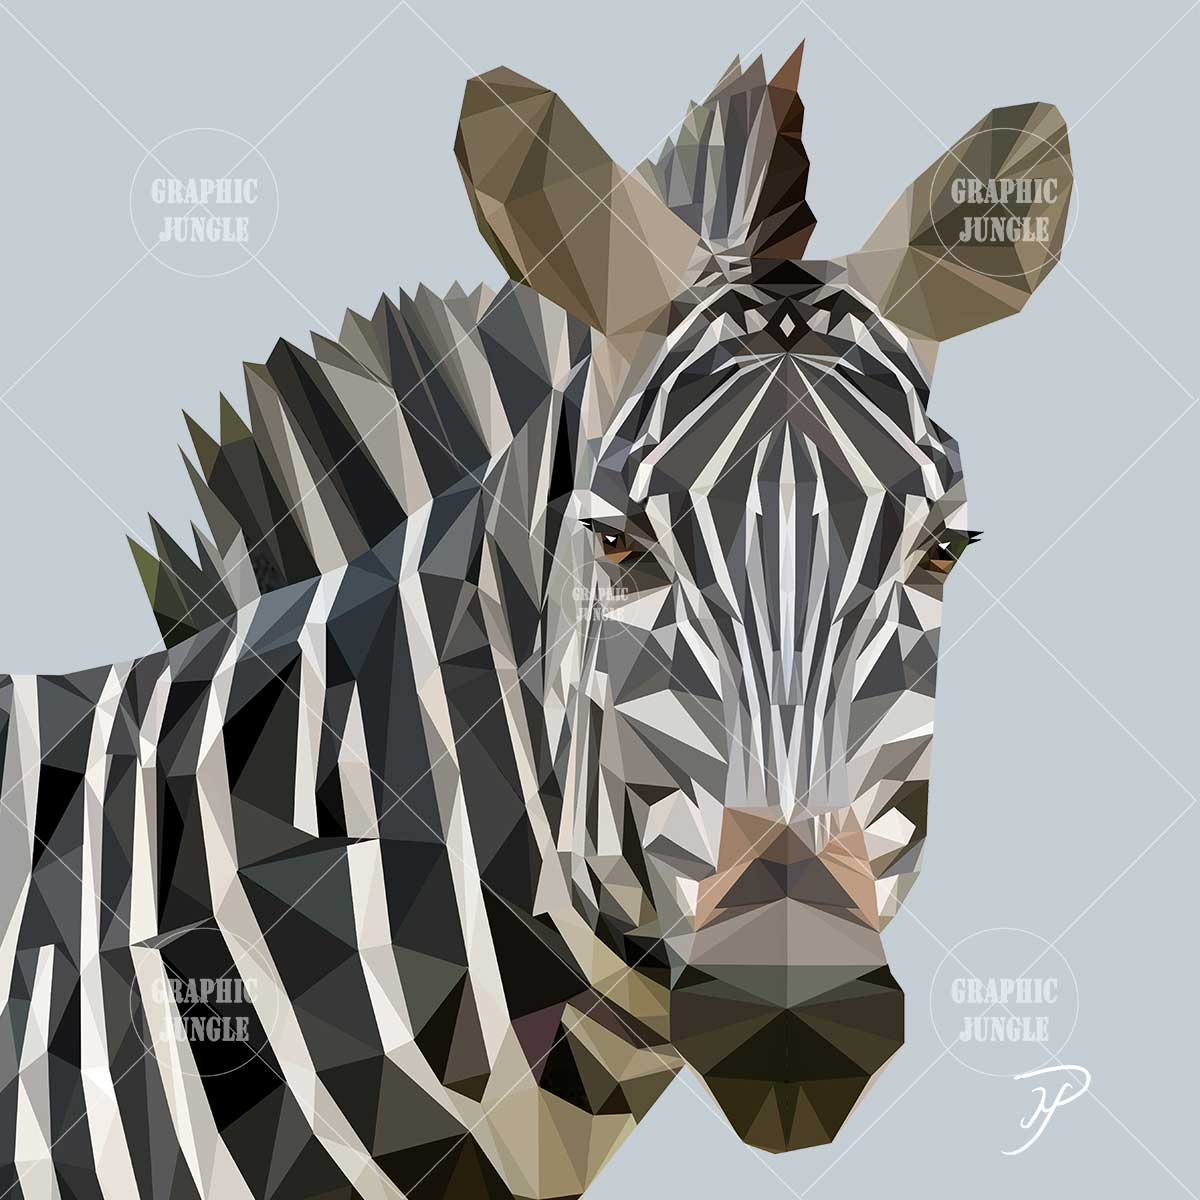 05 ZEBRA - Graphic Jungle